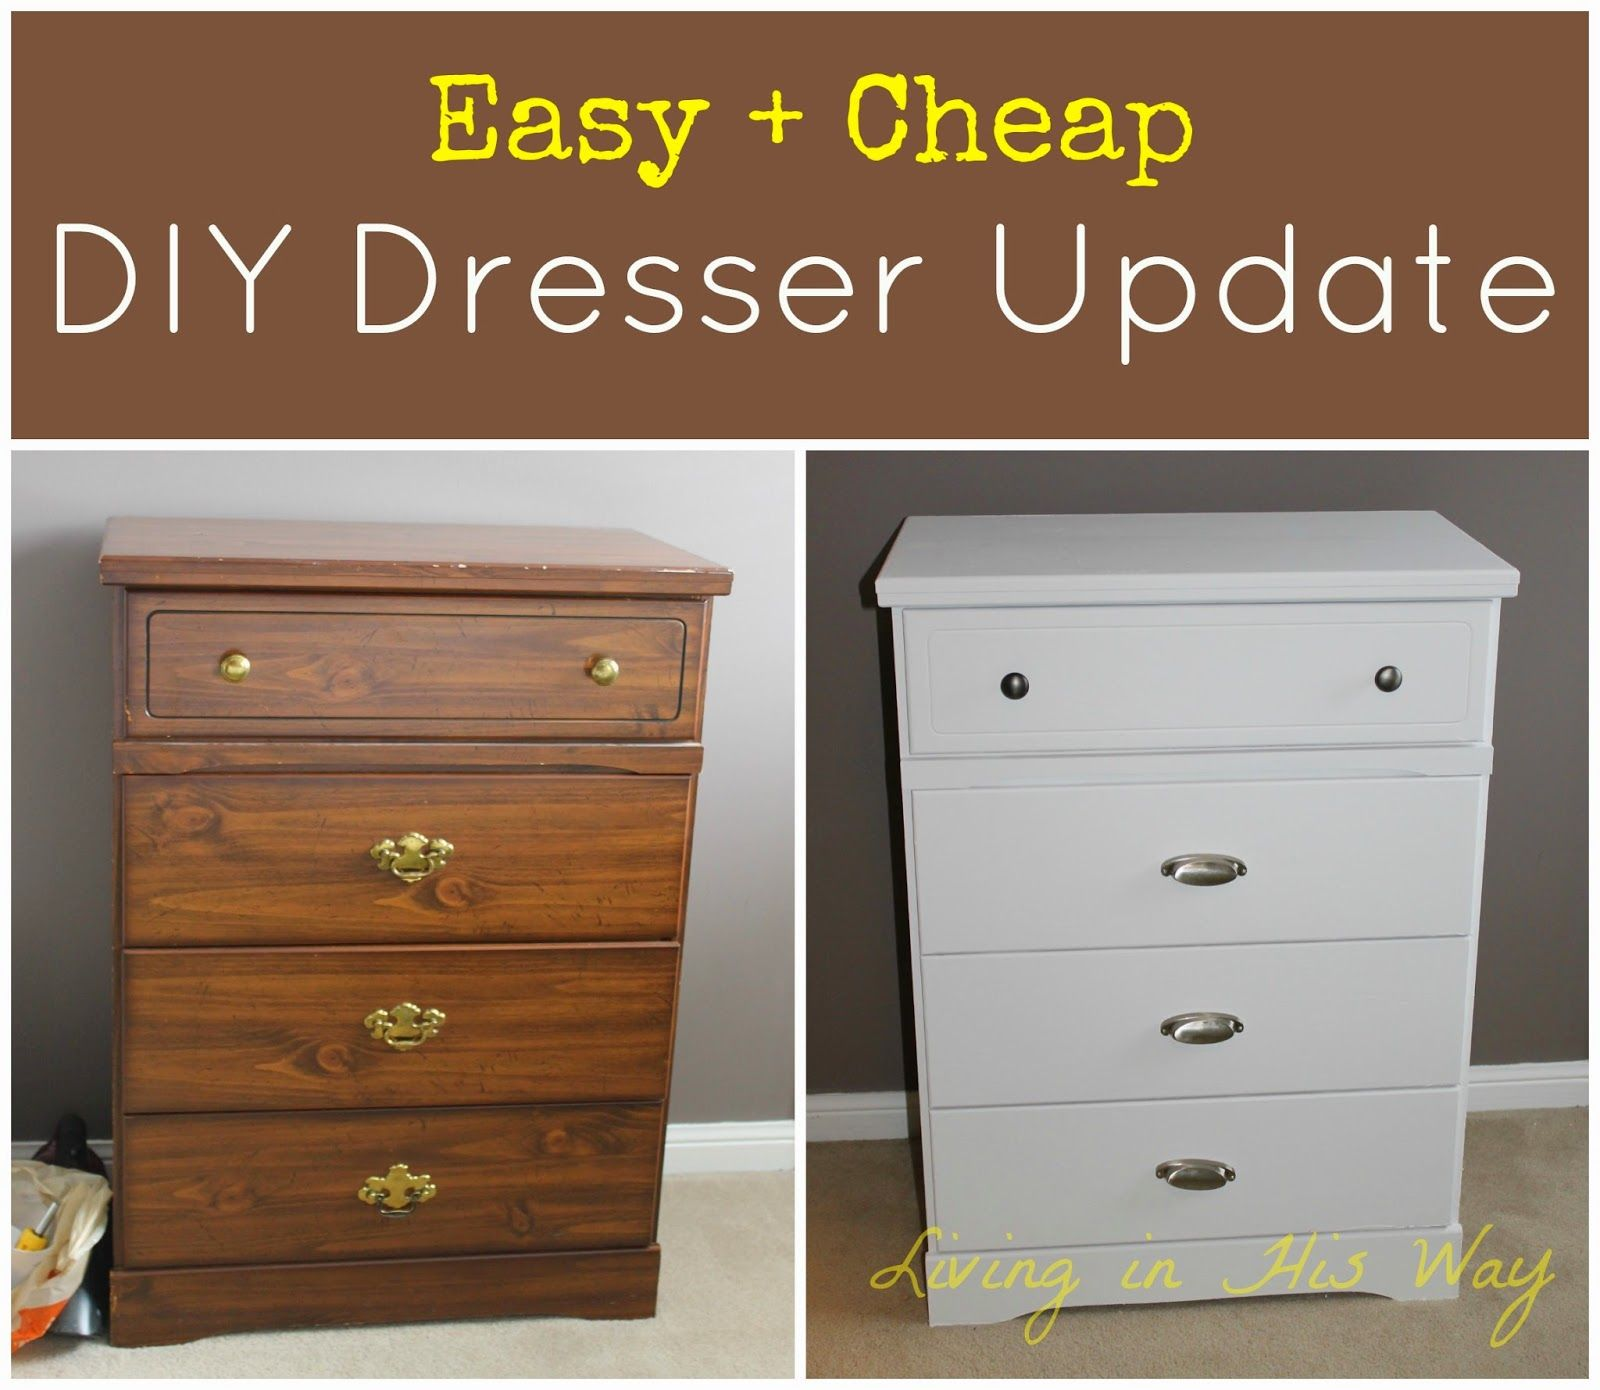 Elegant This Is A Quick And Easy Tutorial On How To Make Old Furniture New Again.